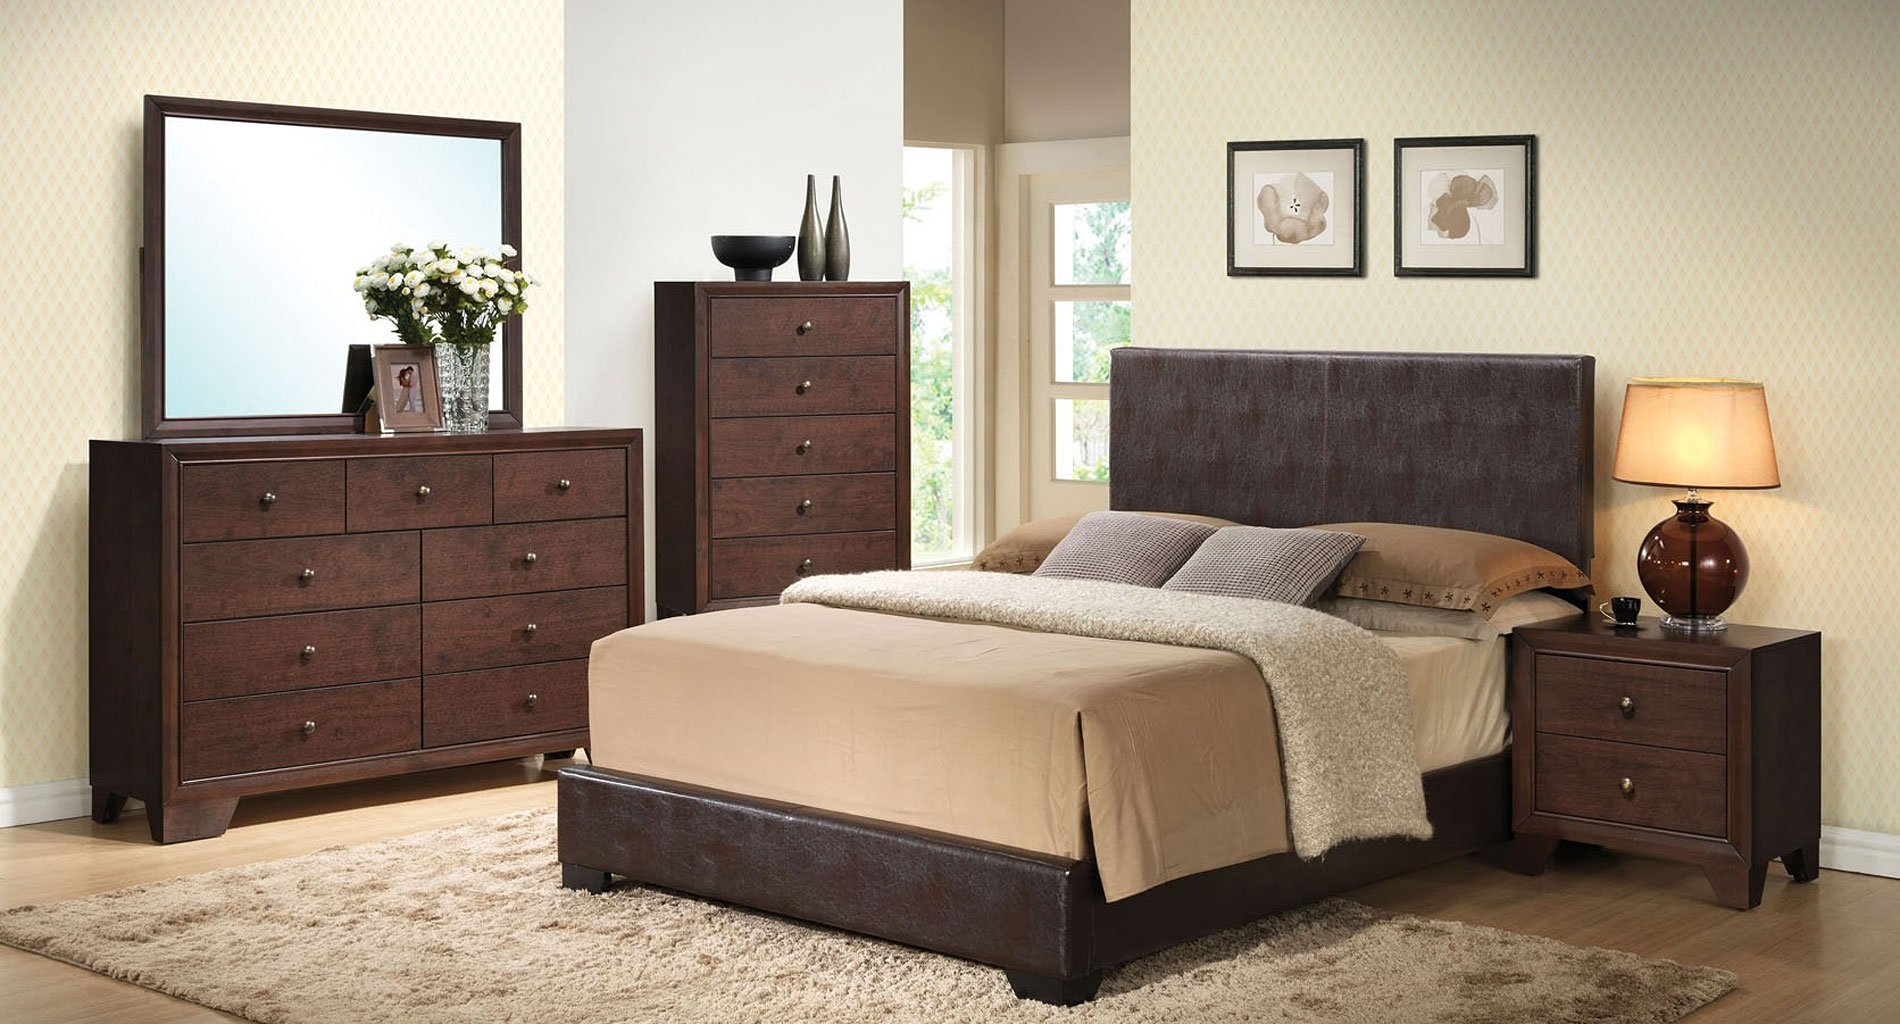 madison bedroom set w ireland brown upholstered bed acme furniture furniture cart